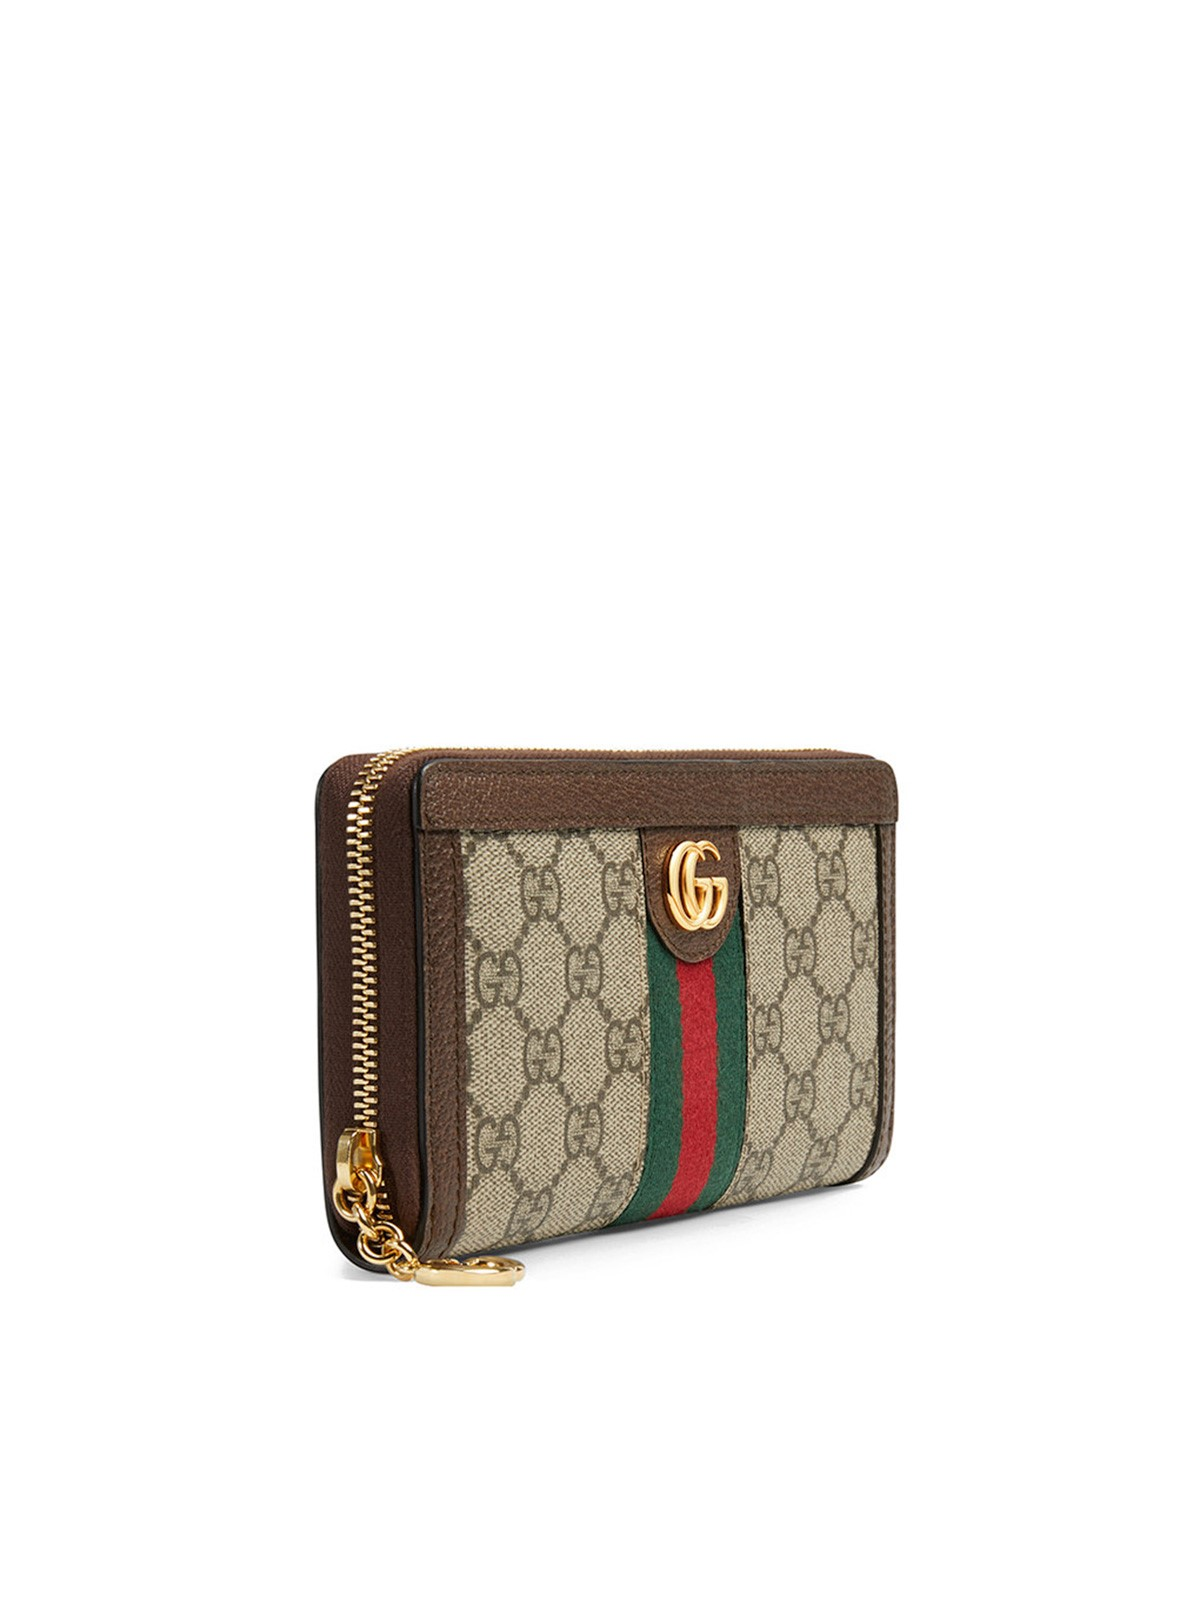 94eb36ecc84588 gucci OPHIDIA ZIP WALLET available on montiboutique.com - 22766